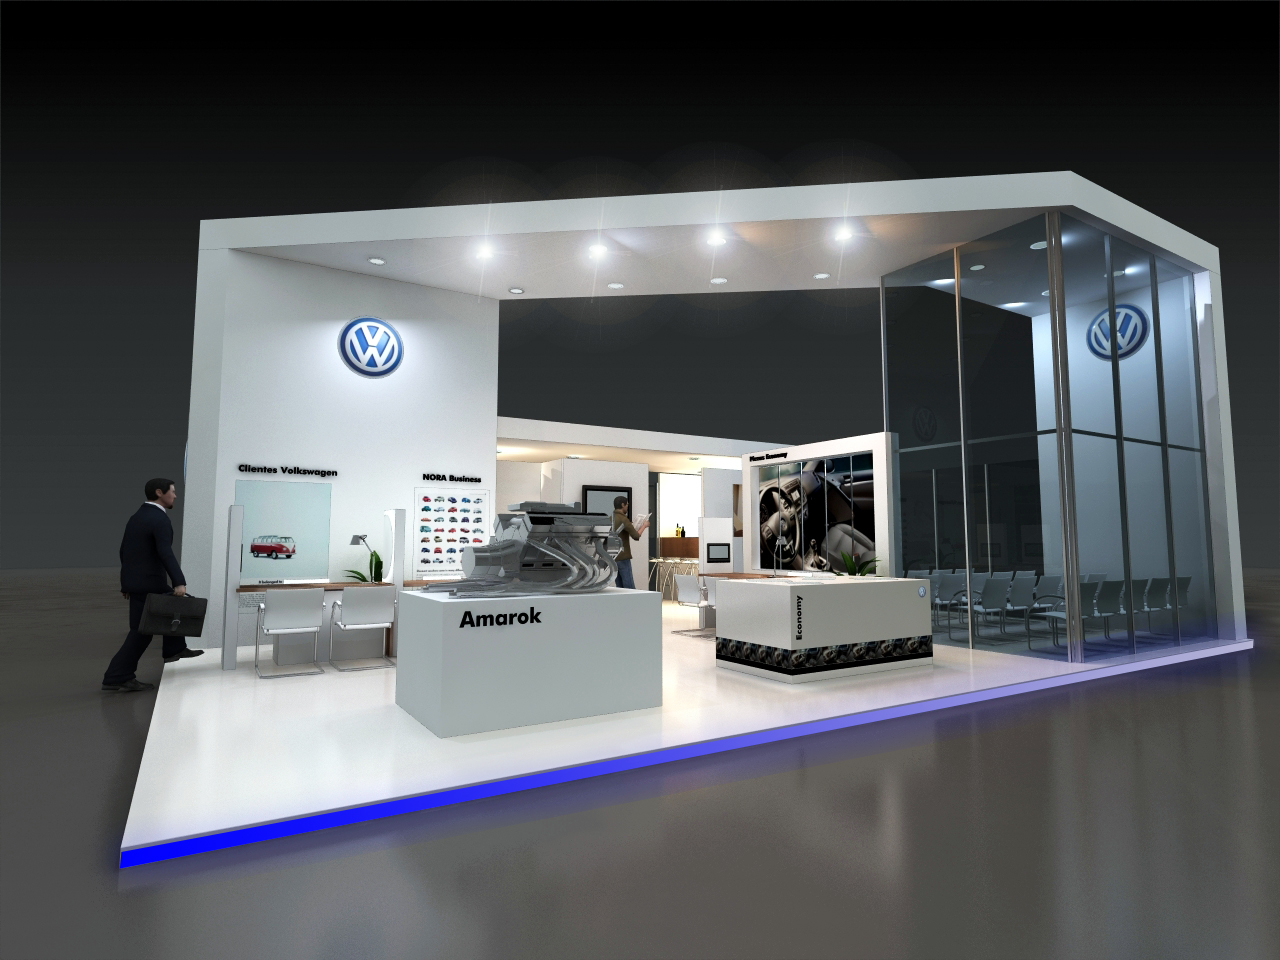 Exhibition Booth Design : Exhibit design auto shows by julieta iele at coroflot